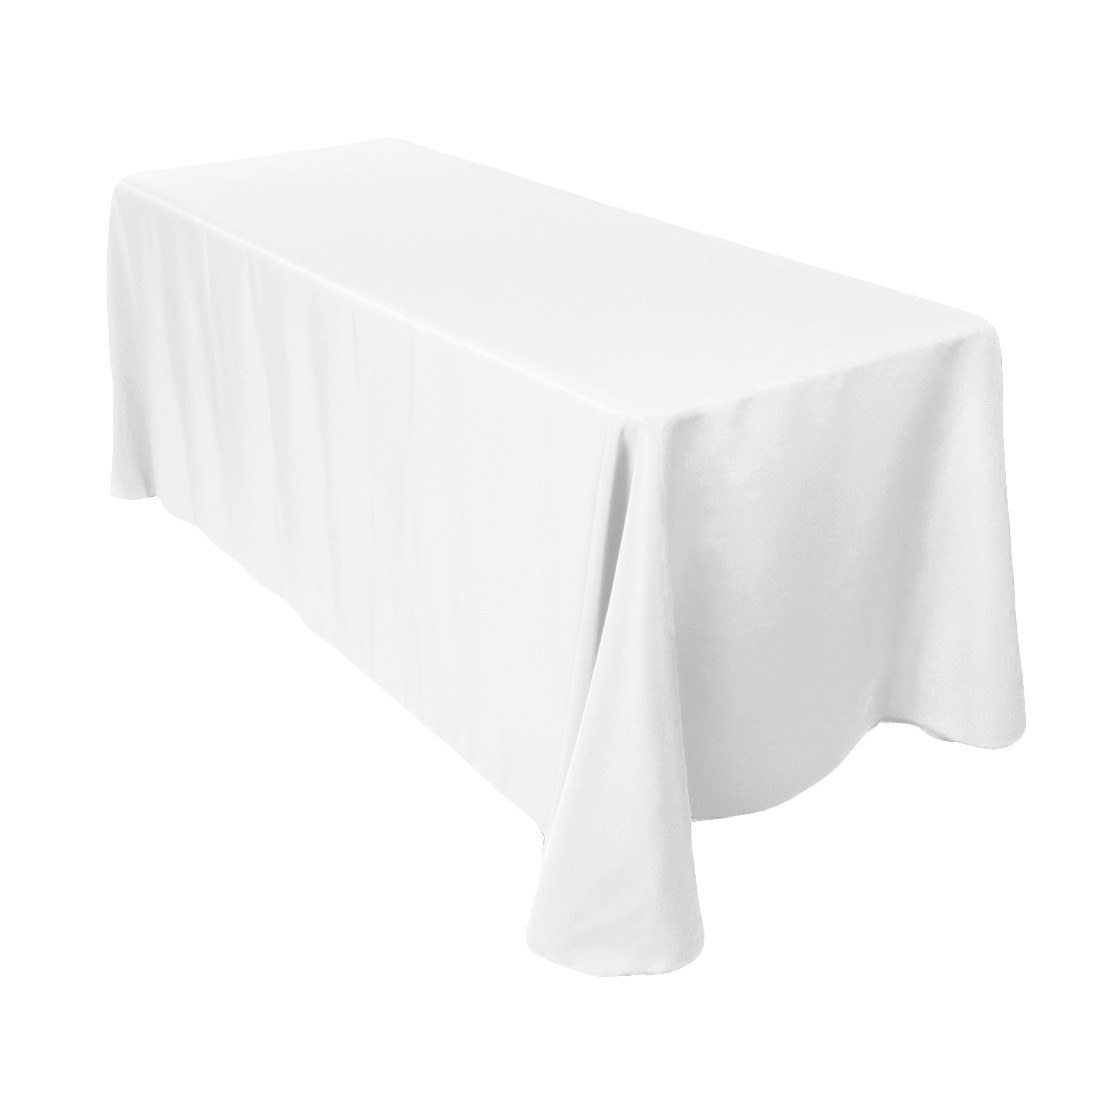 white oblong table cloth